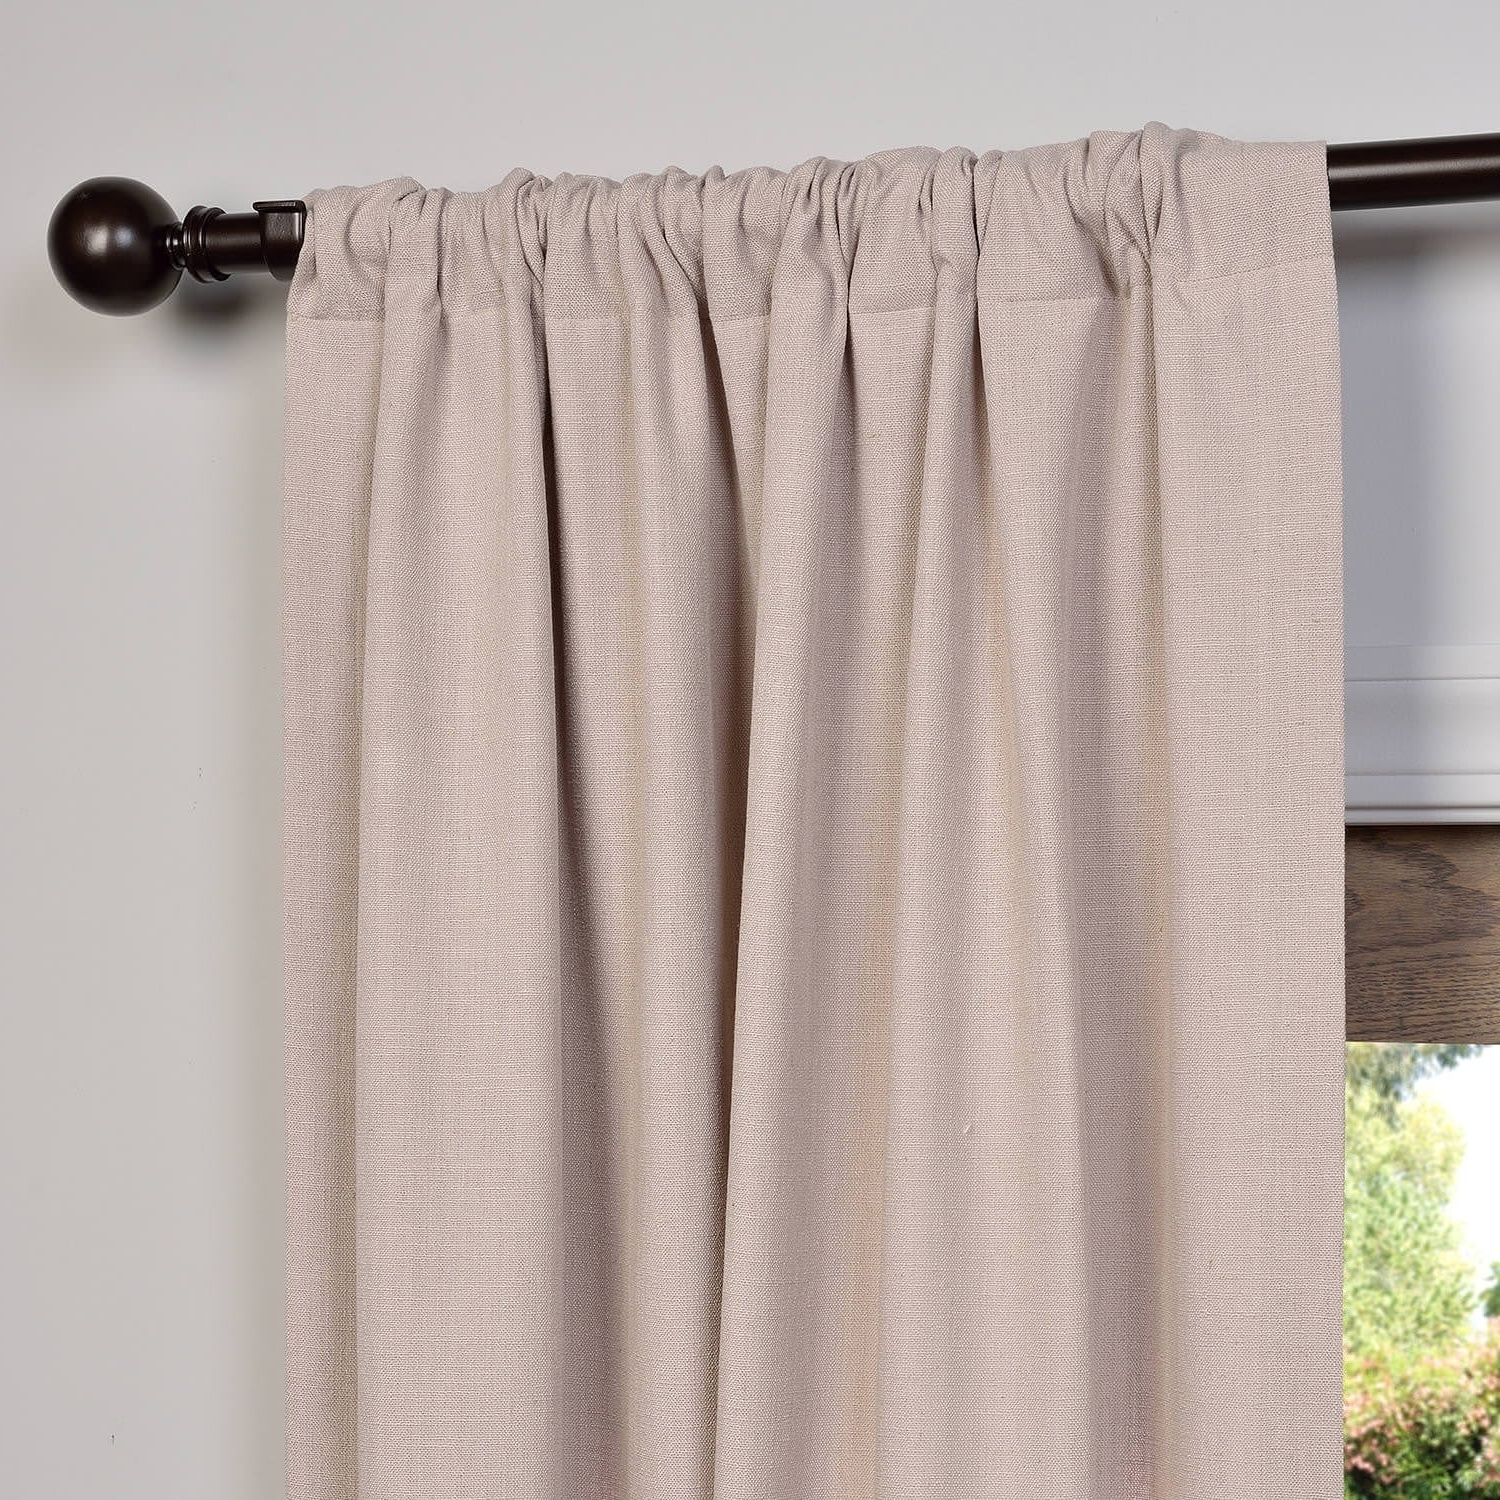 Heavy Faux Linen Single Curtain Panels With Regard To Most Recent Heavy Faux Linen Single Curtain Panel (View 1 of 20)